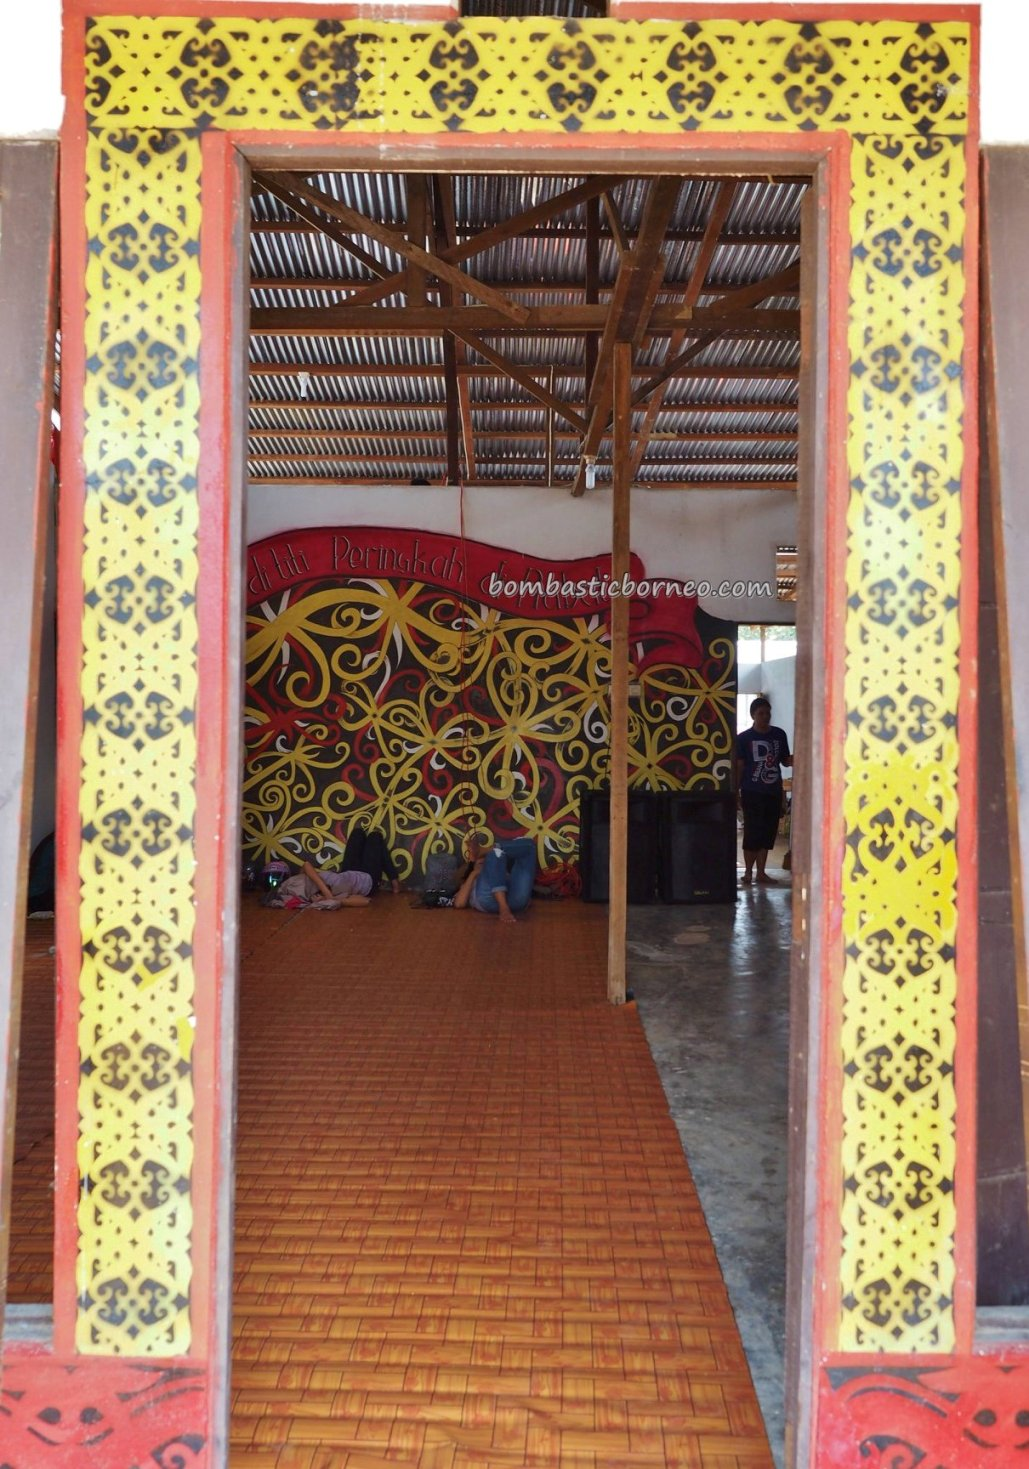 Rumah Betang Raya Dori Mpulor, thanksgiving, authentic, traditional, destination, culture, Kalimantan Barat, ethnic, native, tribe, tribal, Tourism, tourist attraction, trans borneo,